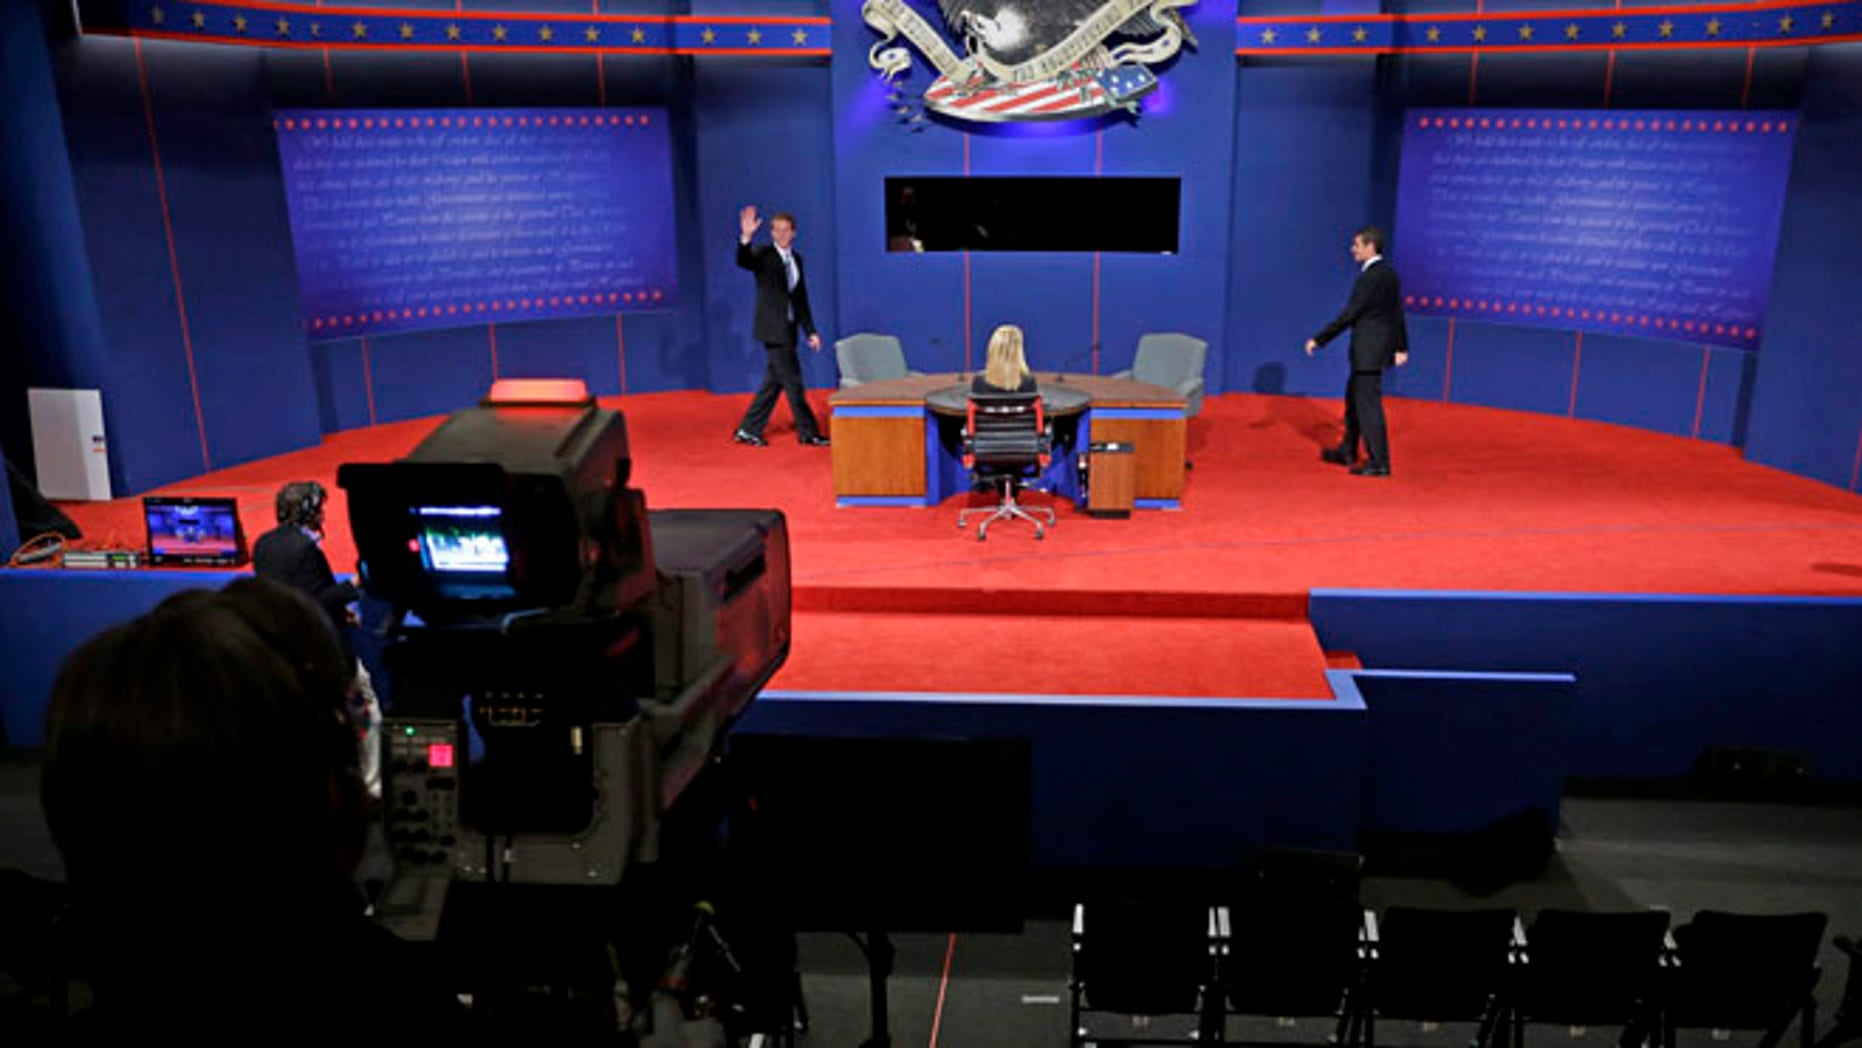 Oct. 10, 2012: Students posing as Vice President Biden and his Republican challenger, Rep. Paul Ryan, R-Wis., walk on stage during set-up for the vice presidential debate at Centre College in Danville, Ky.